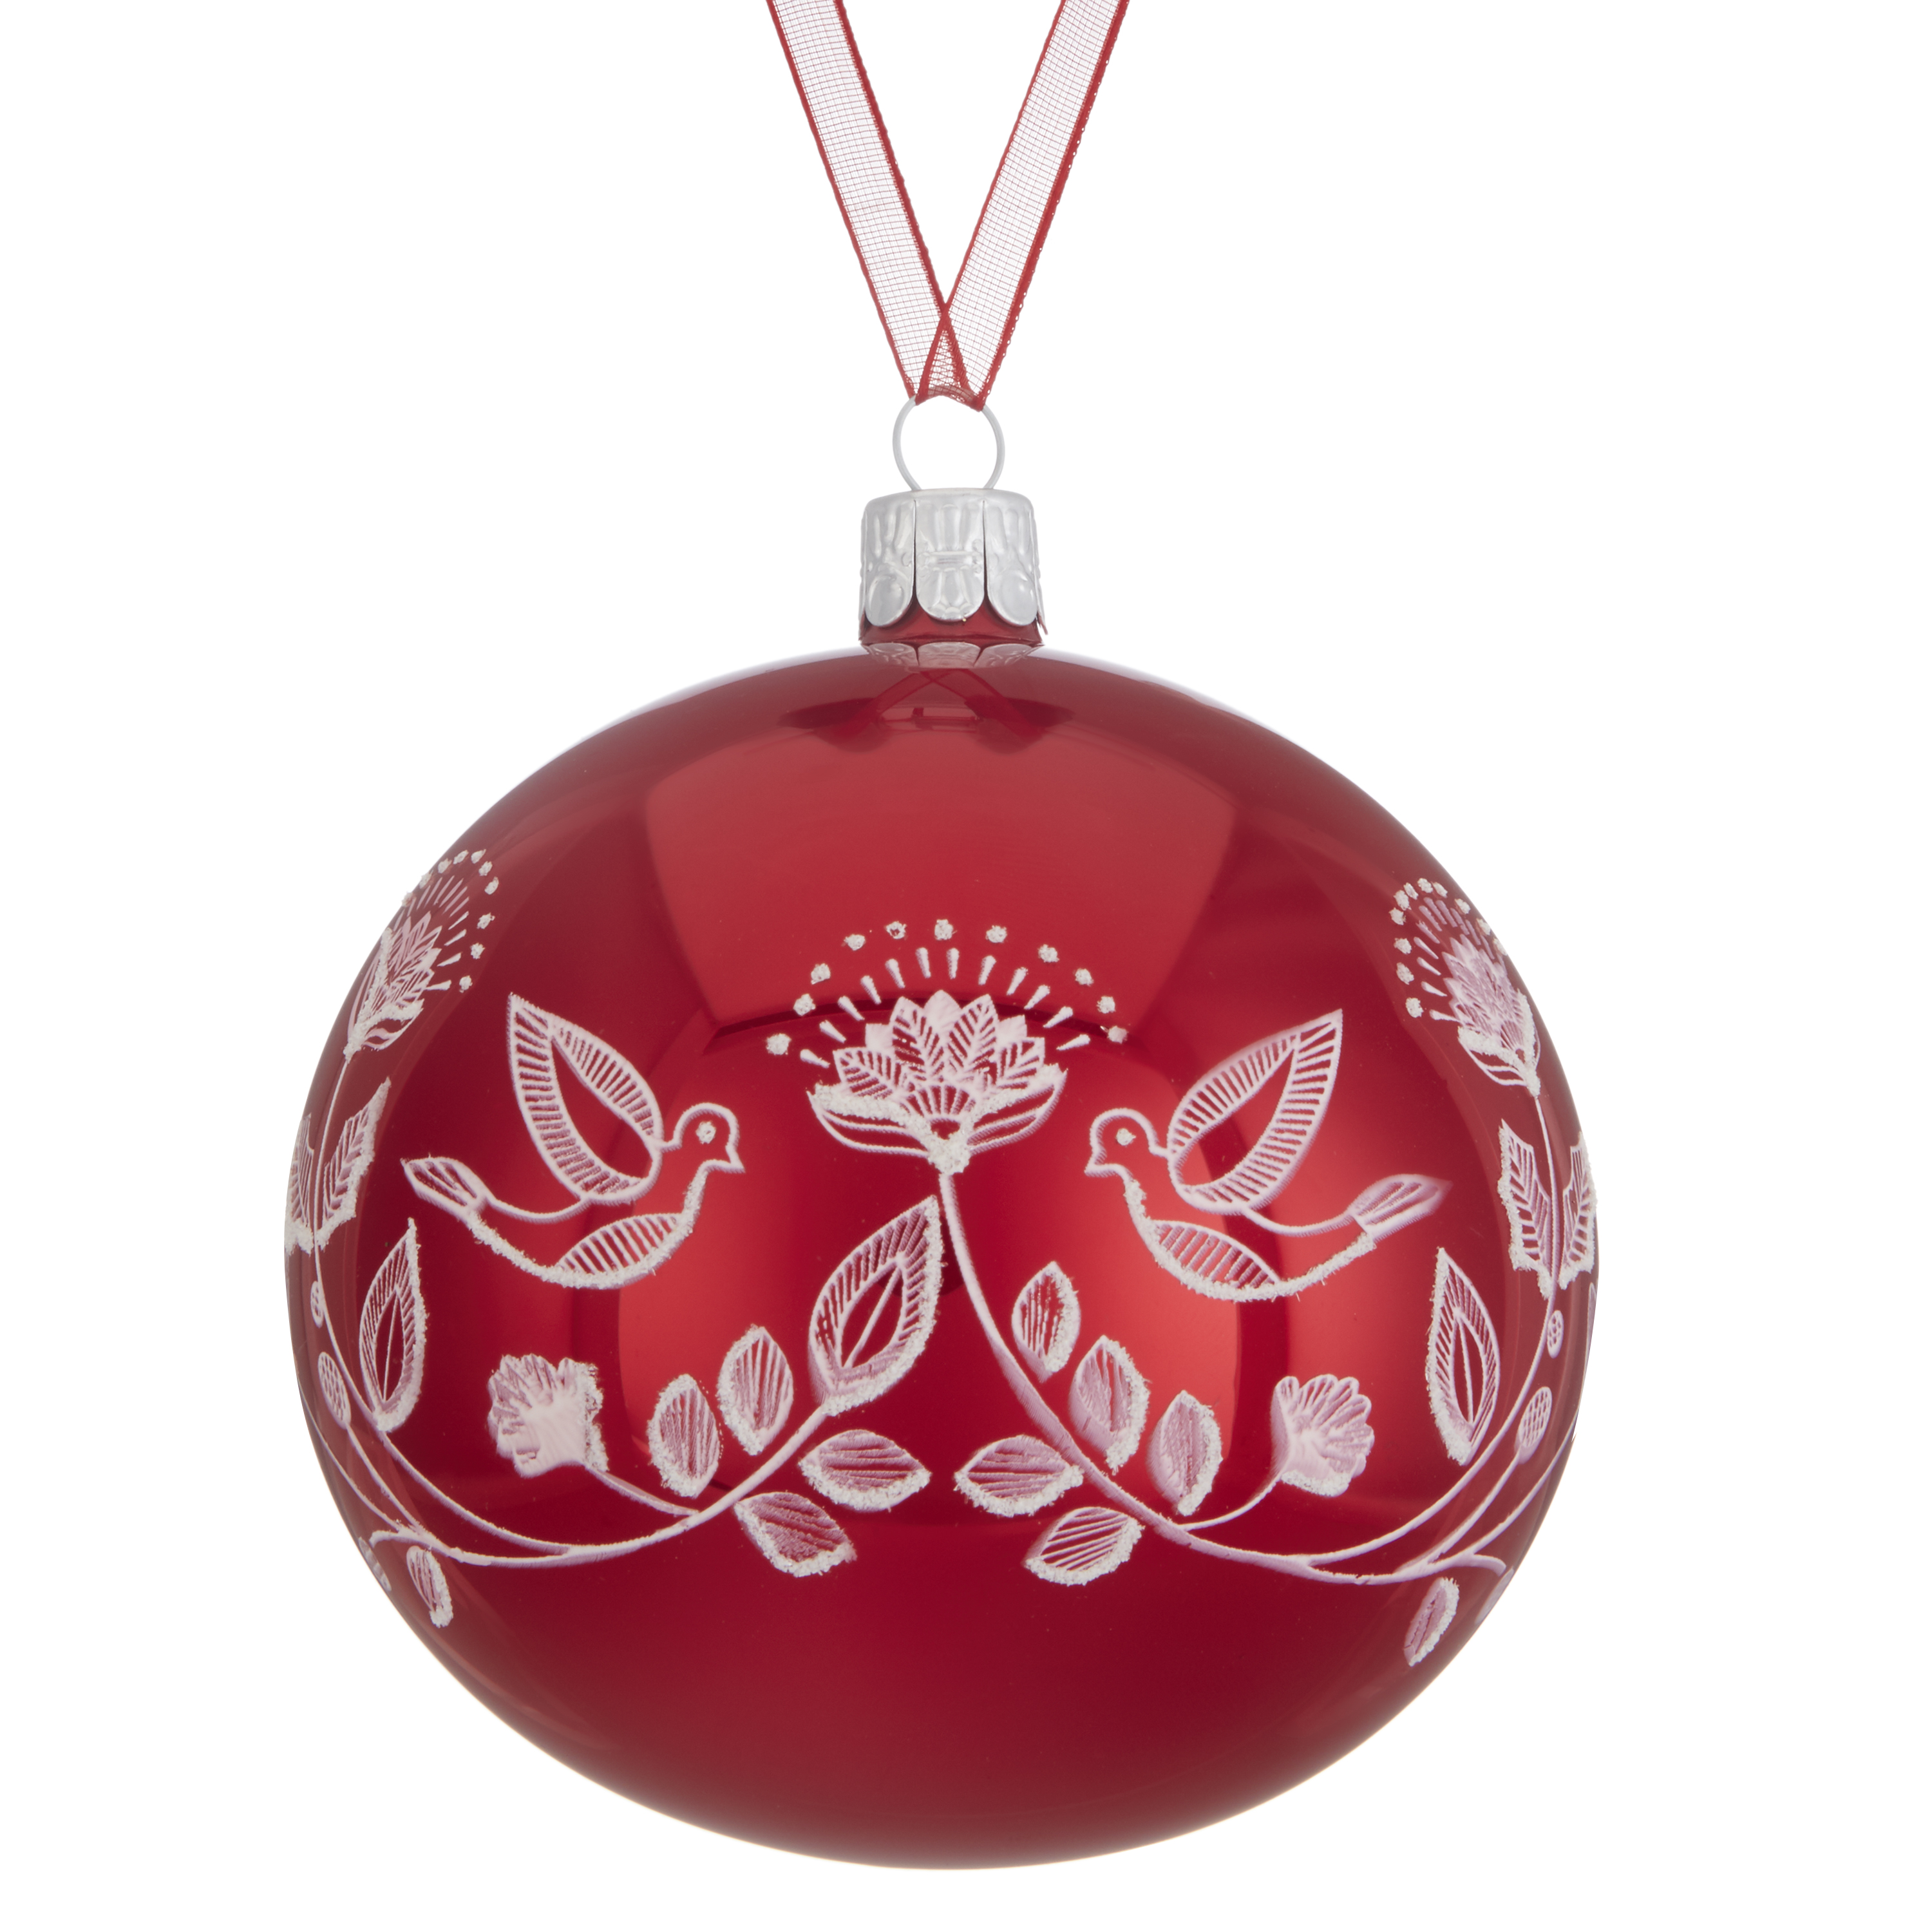 7 Best John Lewis Christmas Tree Decorations